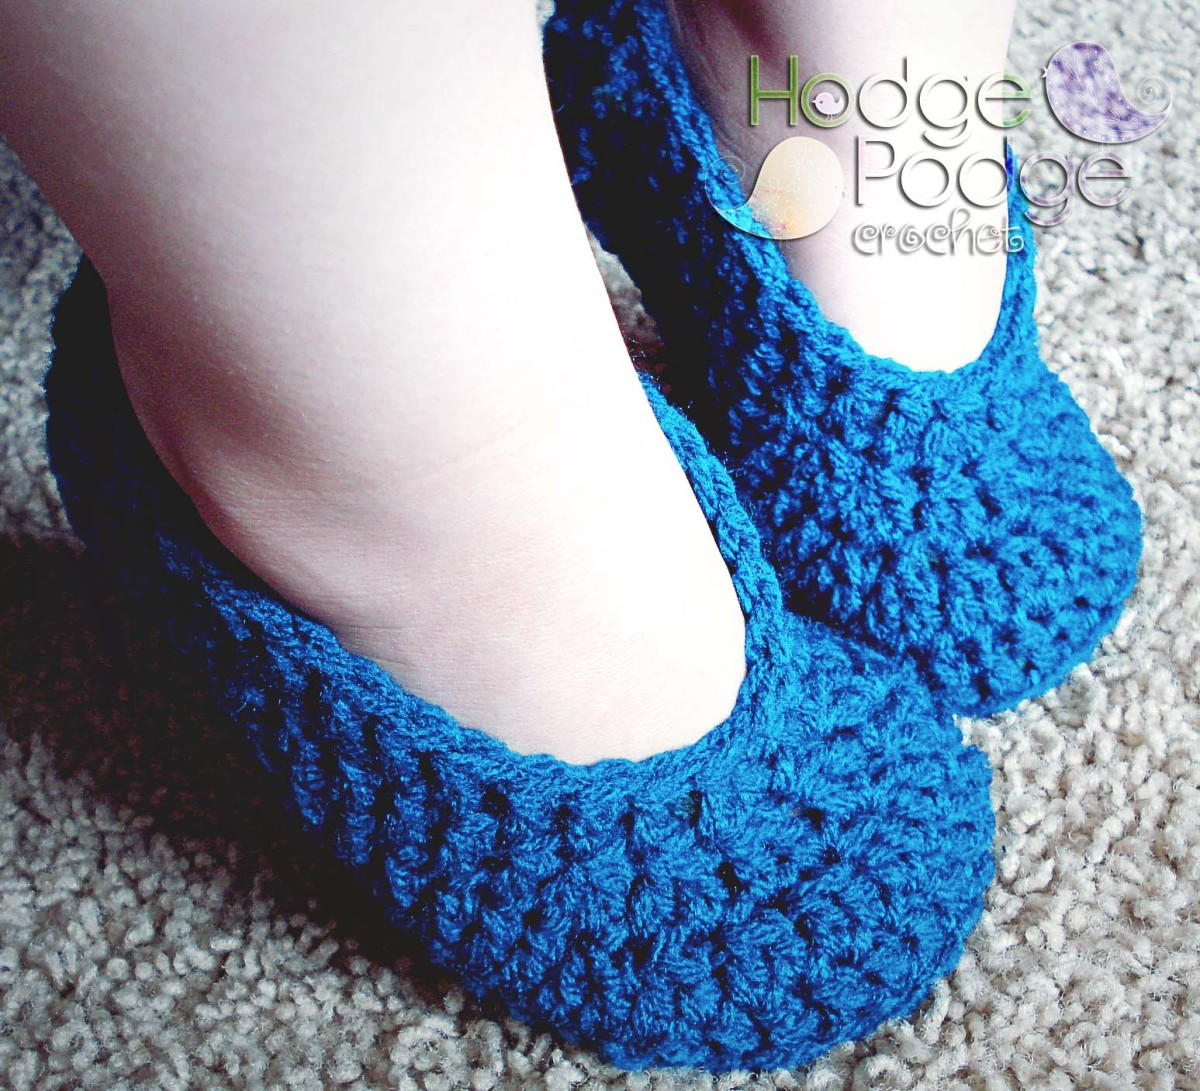 Crochet Patterns For Toddlers Slippers : Simple Toddler Slippers HodgePodge Crochet